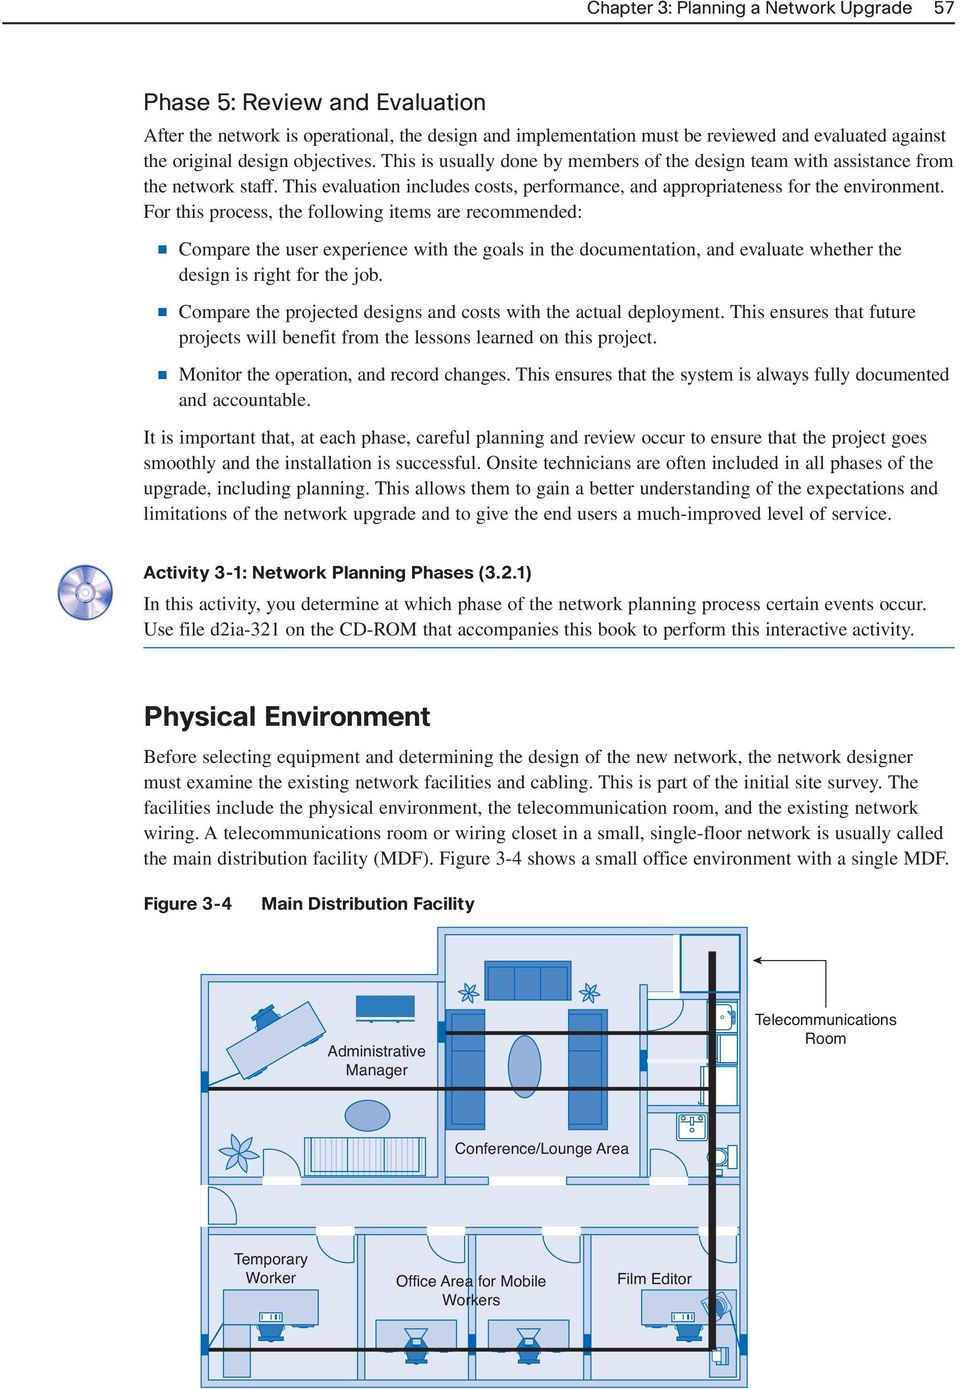 Planning A Network Upgrade Pdf Poweroverethernet Poe On Industrialbased Networking Fig 2 For This Process The Following Items Are Recommended Compare User Experience With